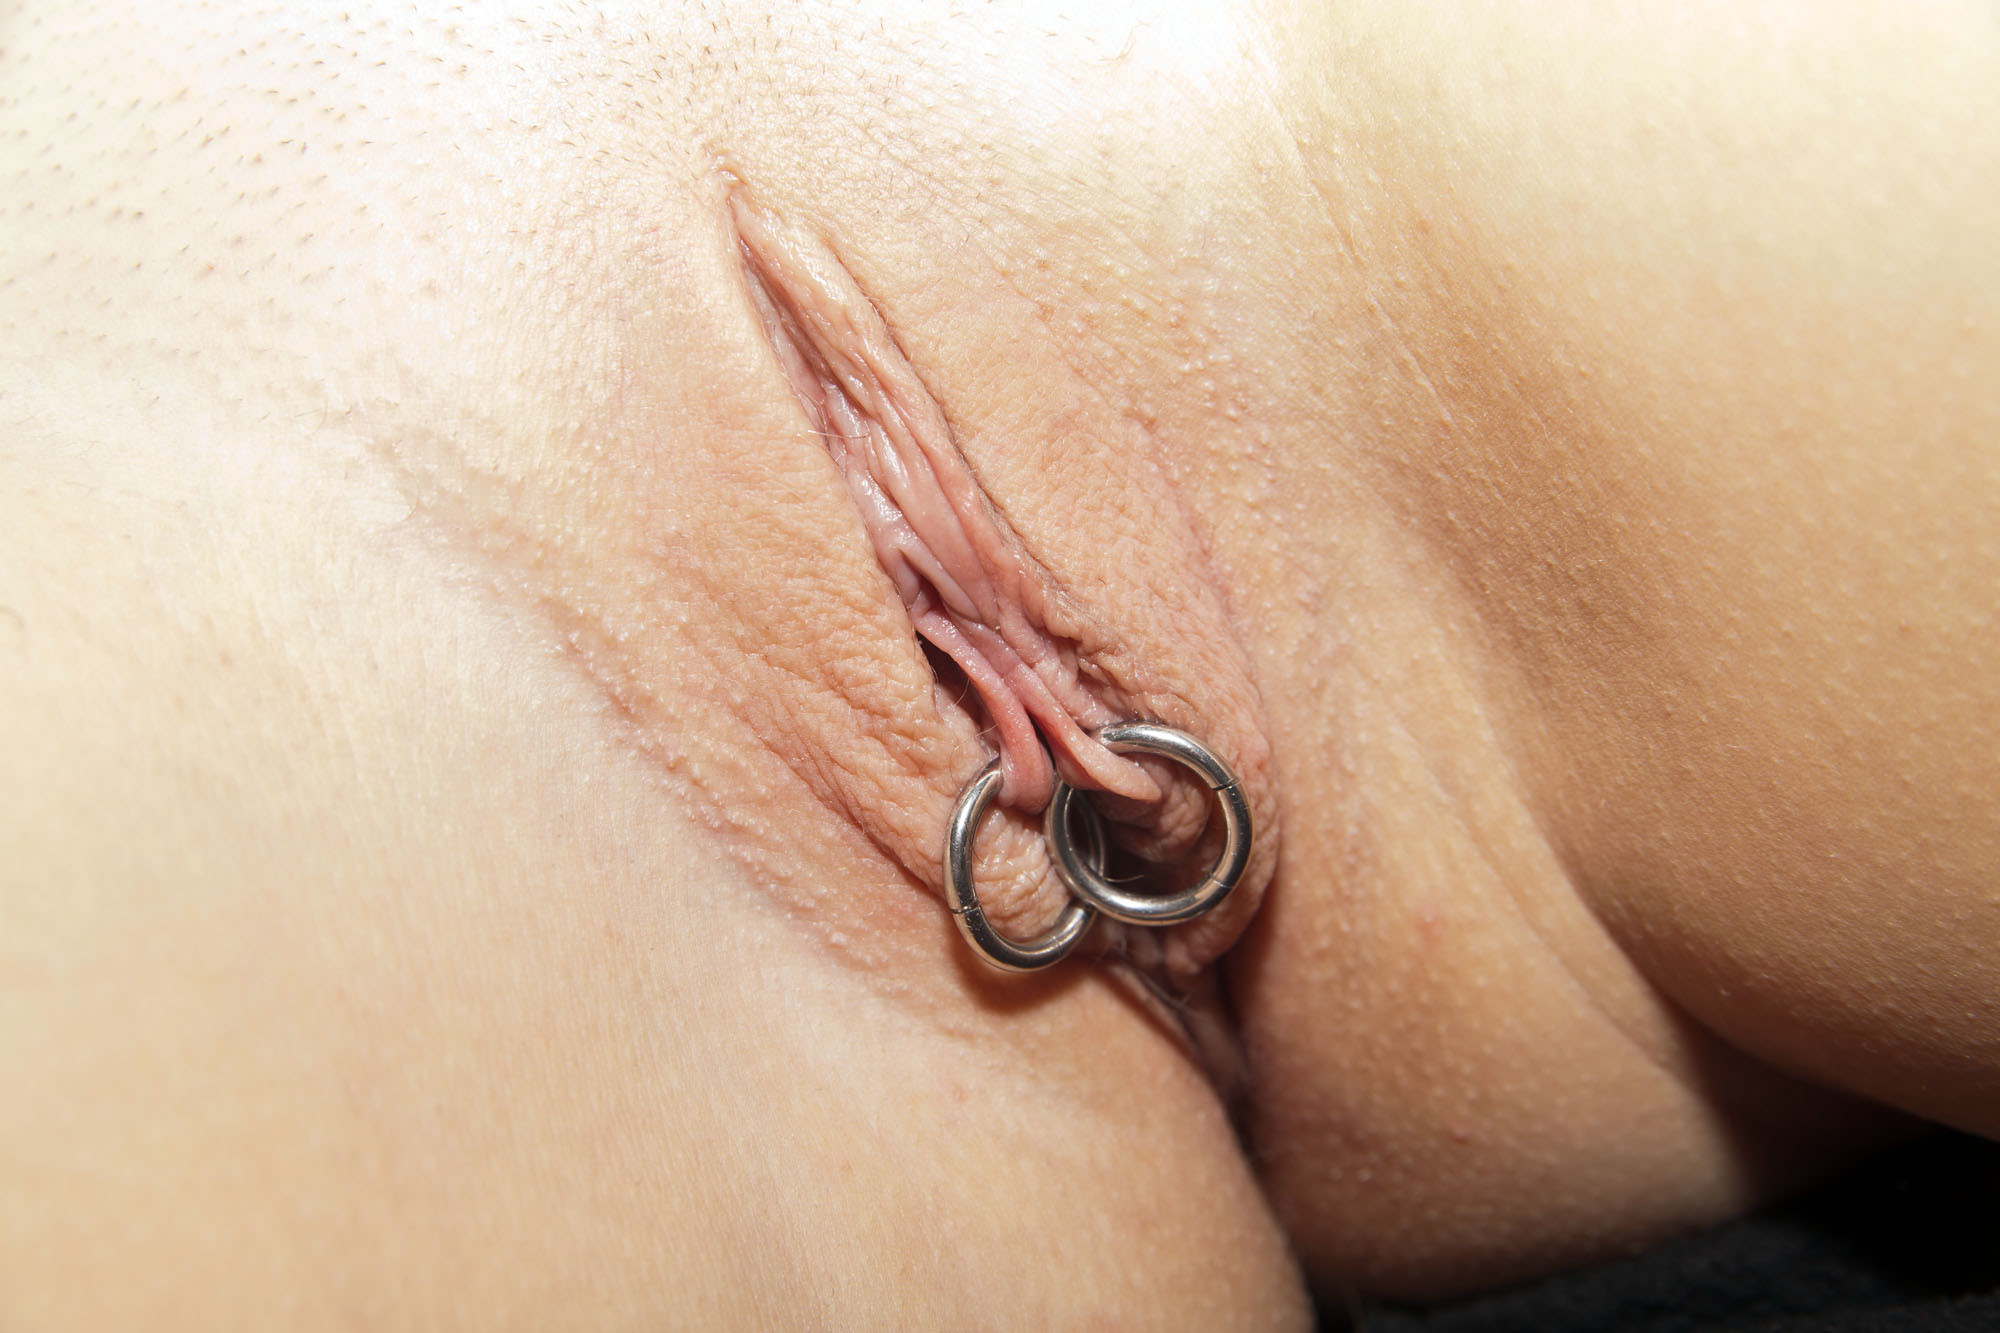 Women vagina piercings